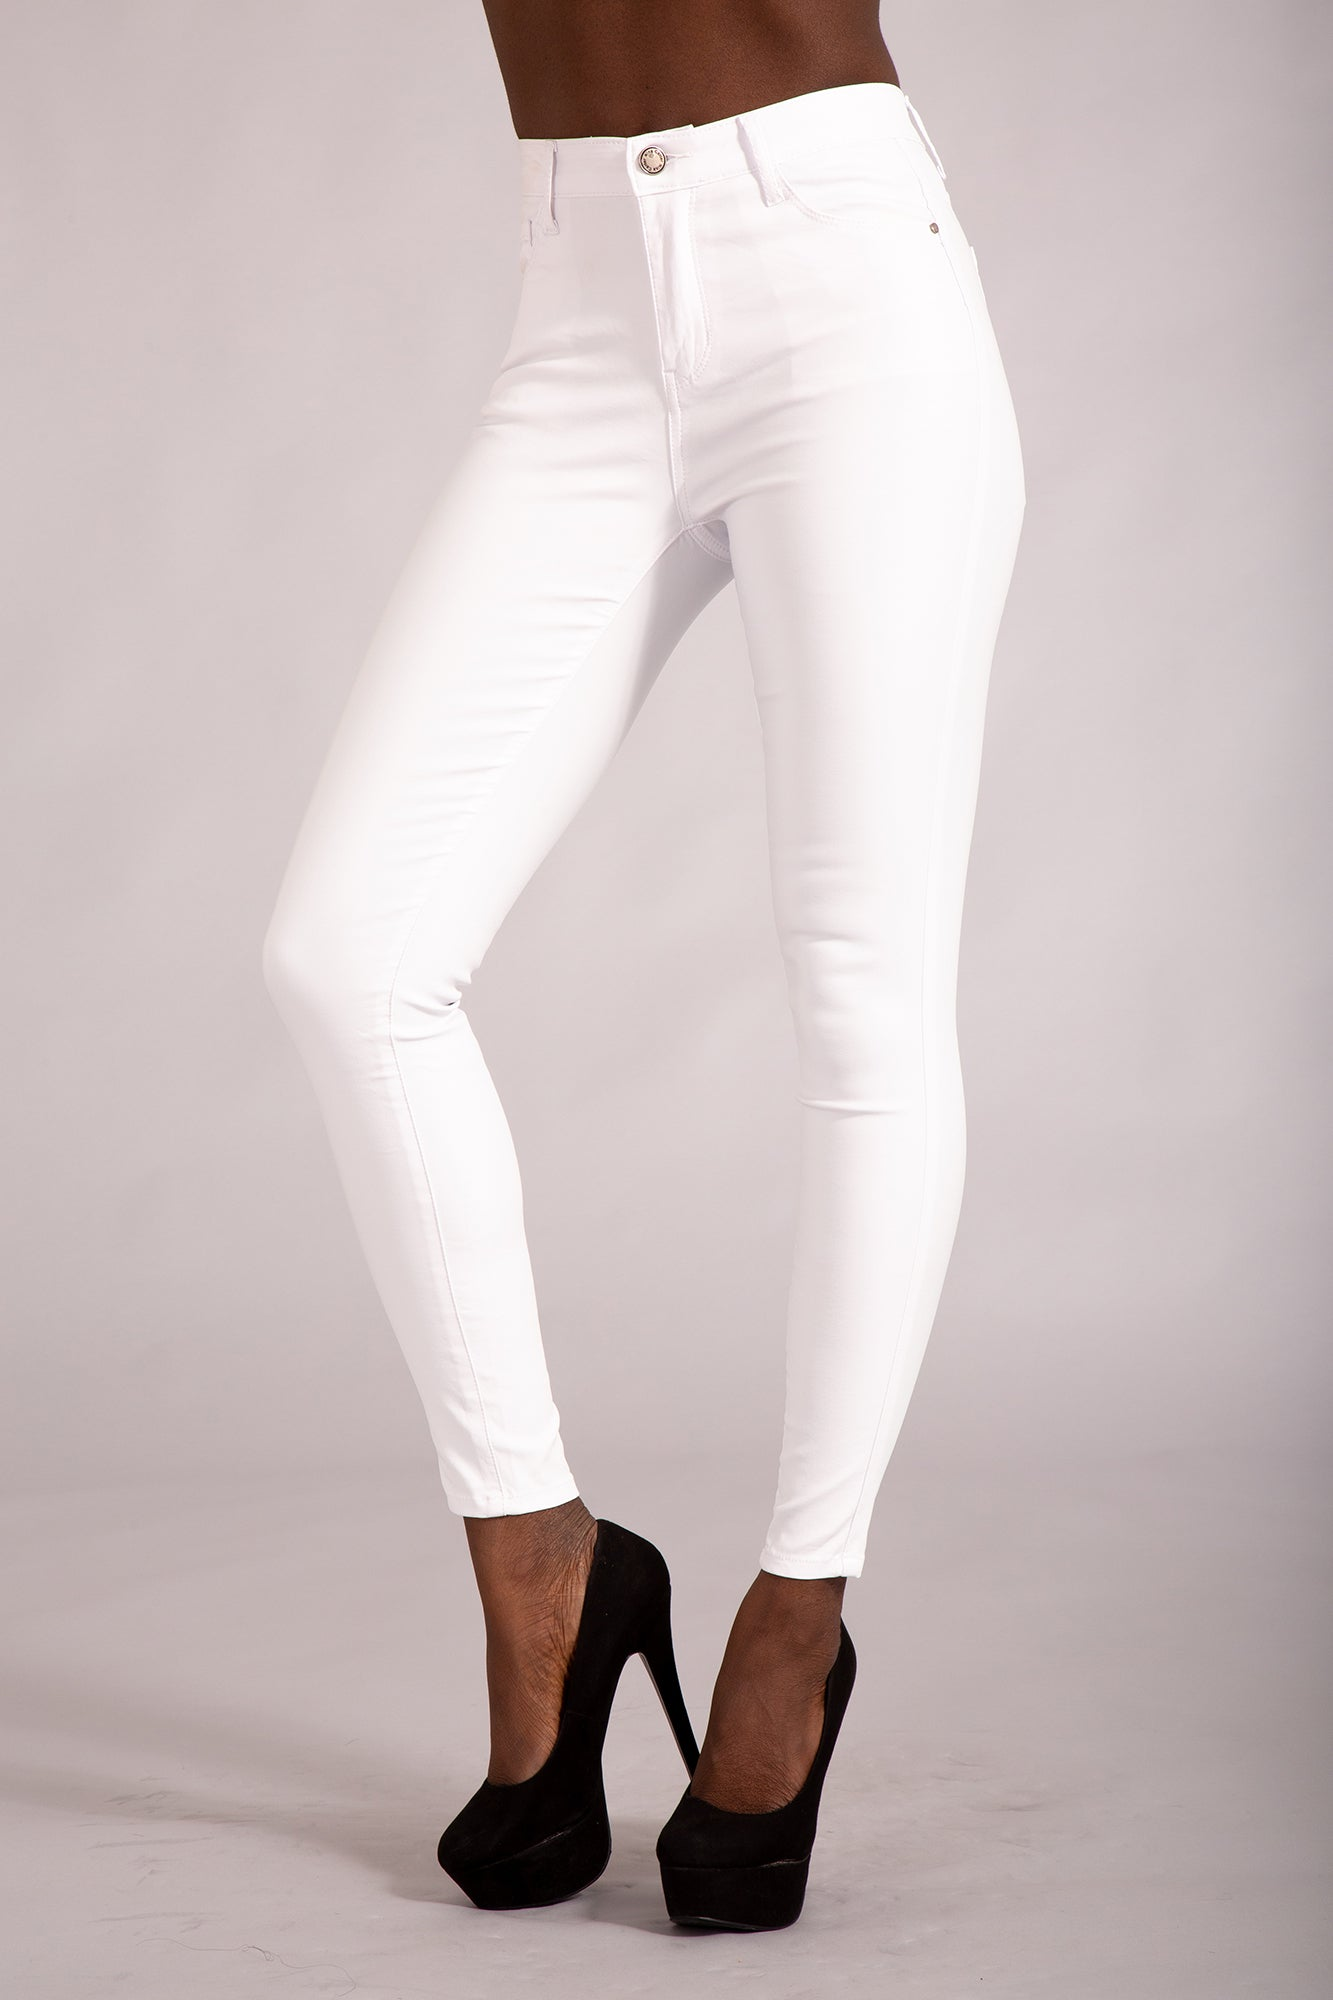 Kandy White leather Look Leggings